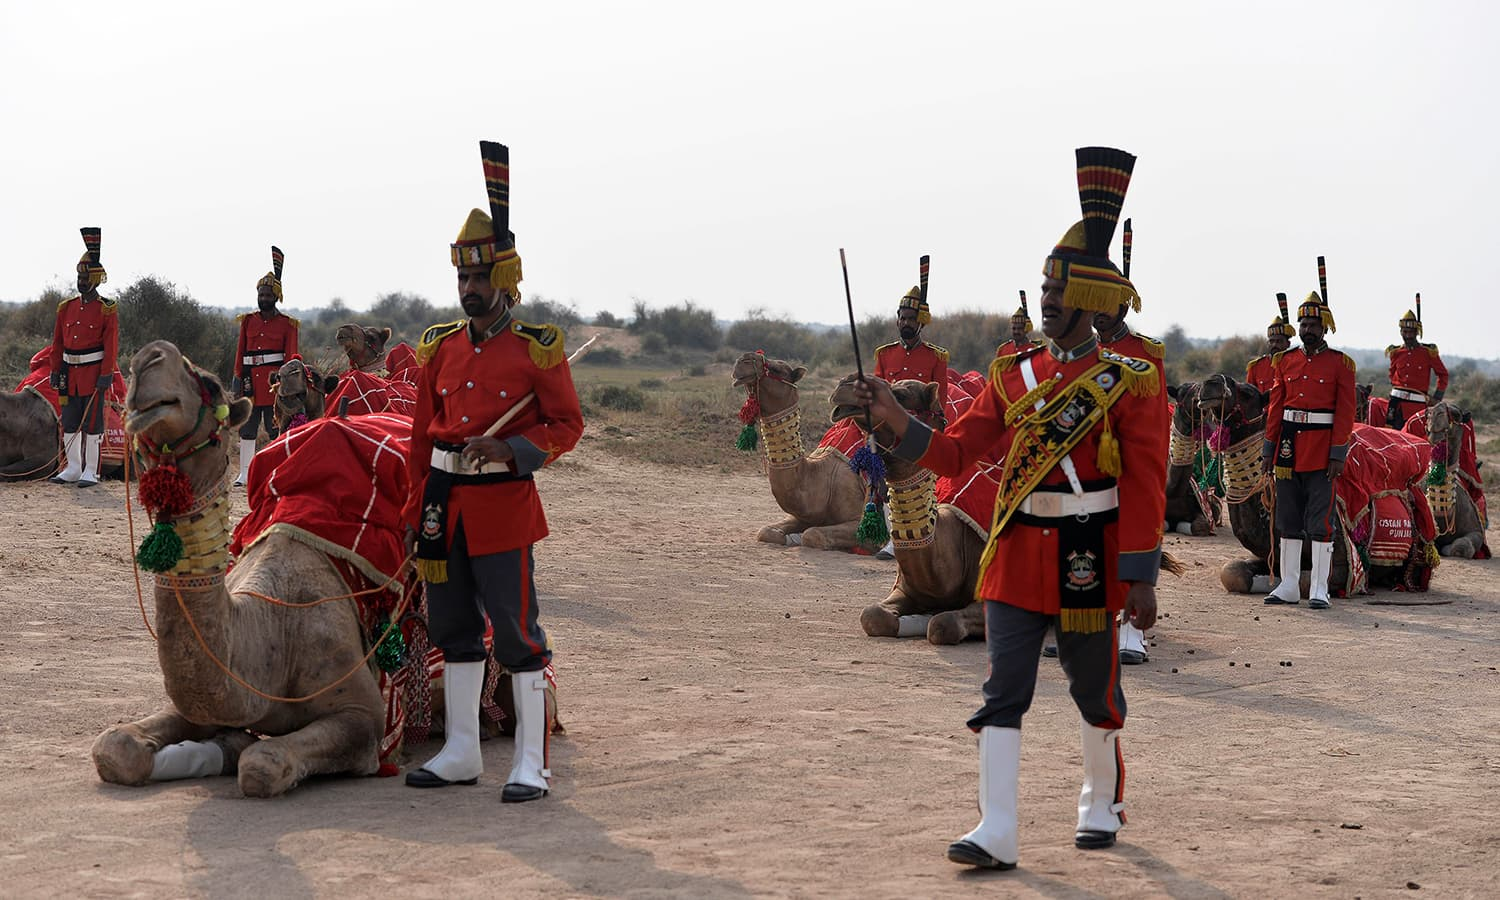 In this photograph taken on November 13, 2015, Band Major of Pakistan Desert Rangers, Muhammad Iqbal (R) instructs team members before they mount on camels for the march in Moj Garh, some 100 kilometres east of Bahawalpur in Punjab province. —AFP